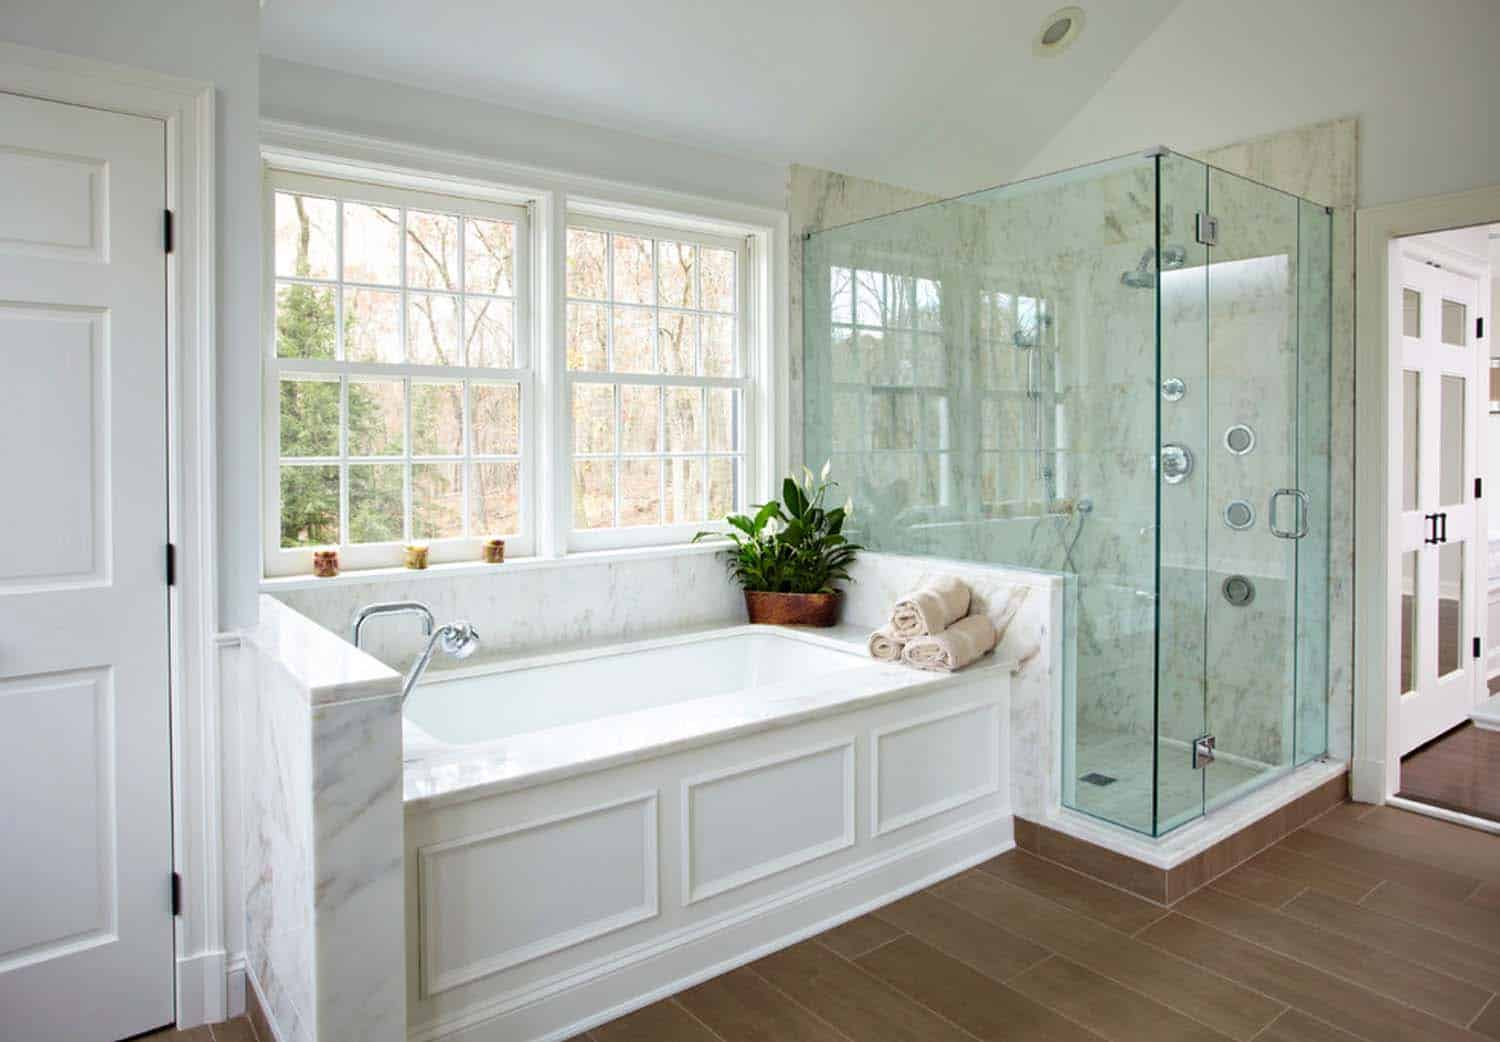 Most Fabulous Traditional Style Bathroom Designs Ever - Examples of bathroom designs